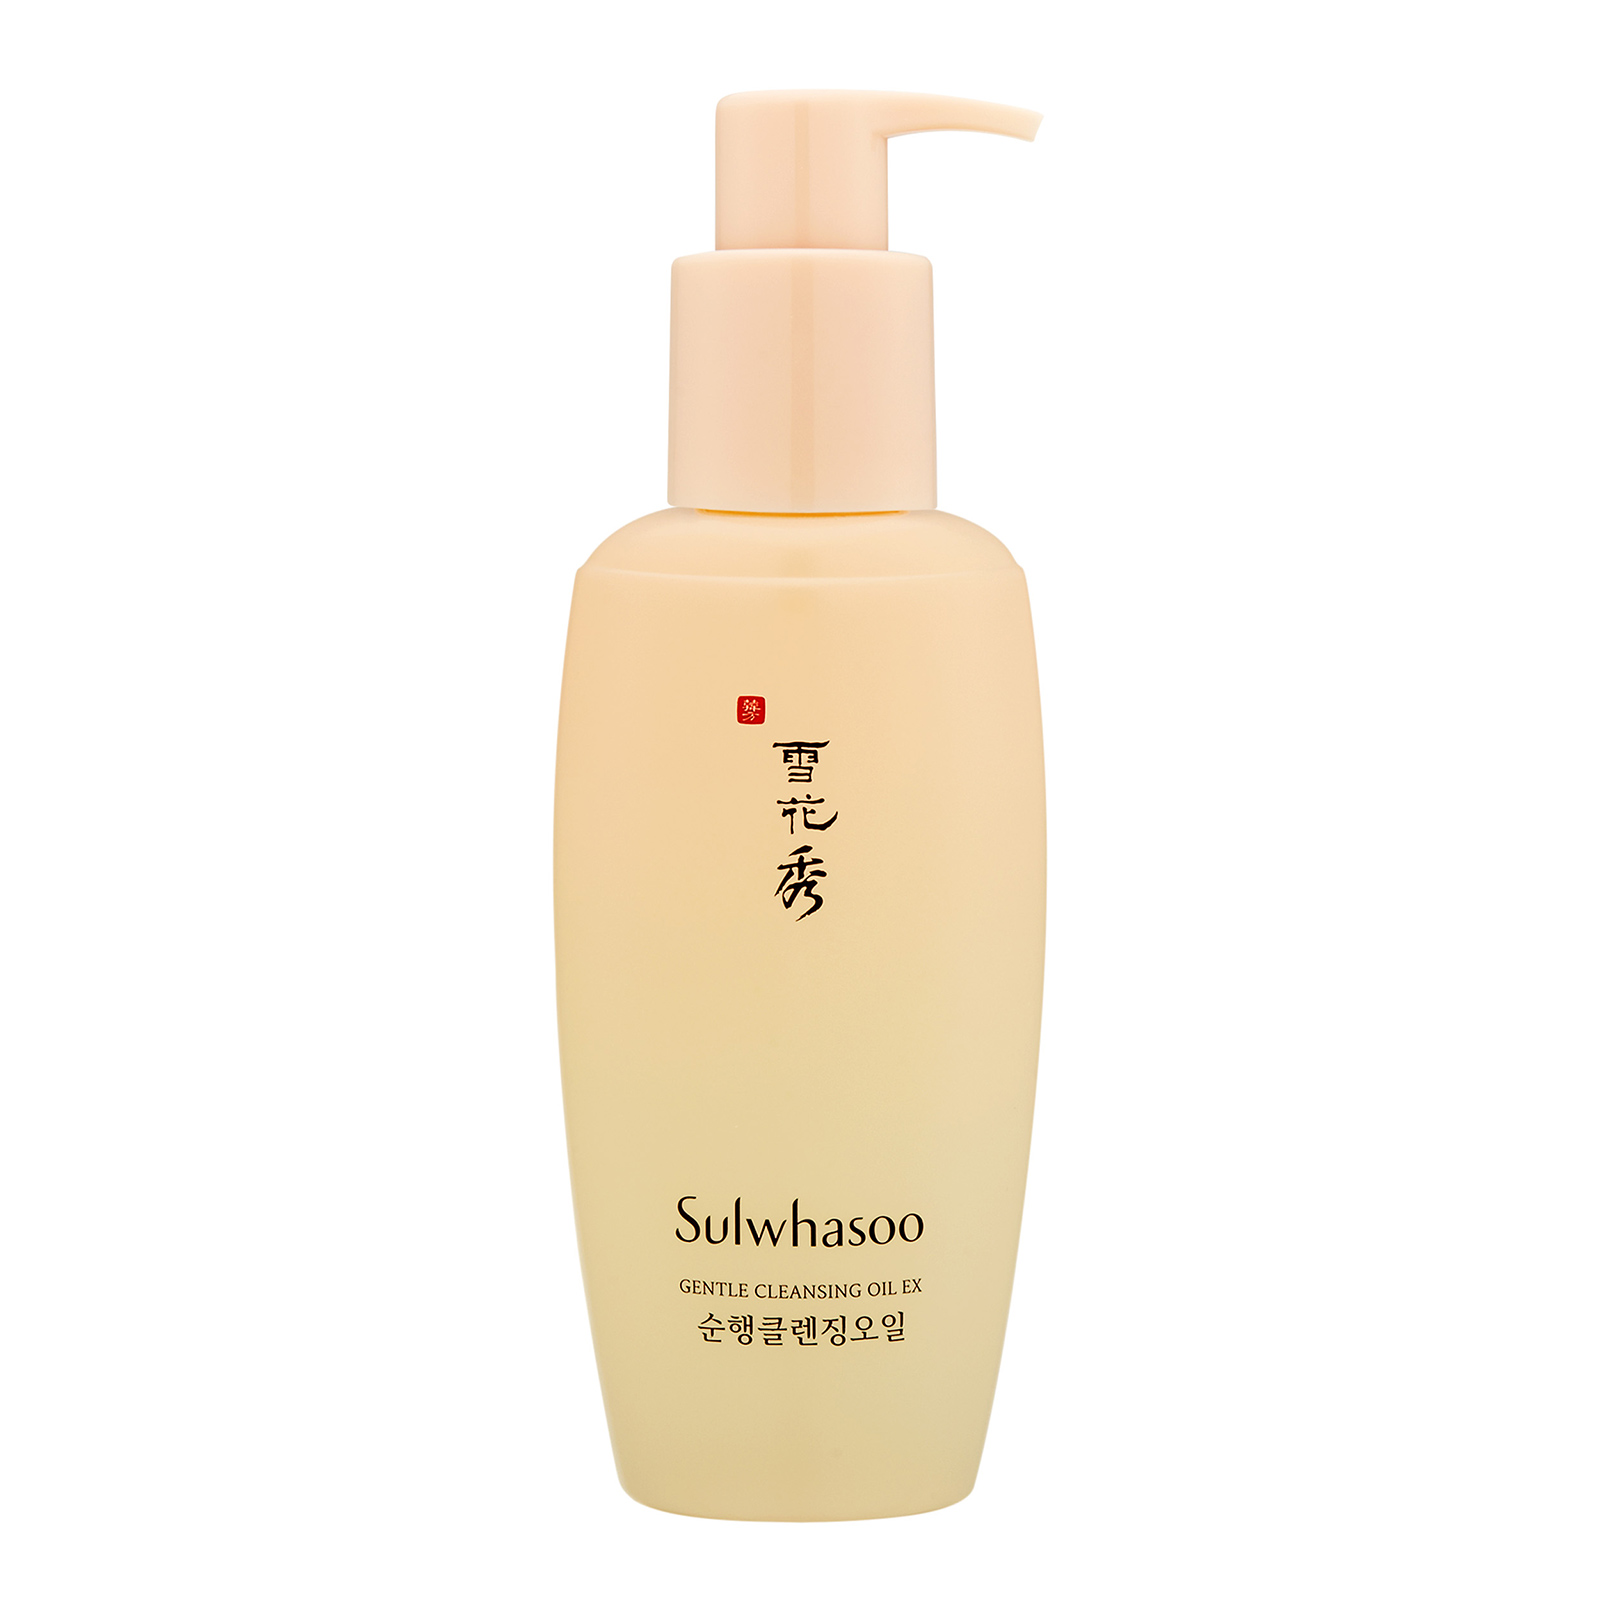 Sulwhasoo  Gentle Cleansing Oil EX 200ml,